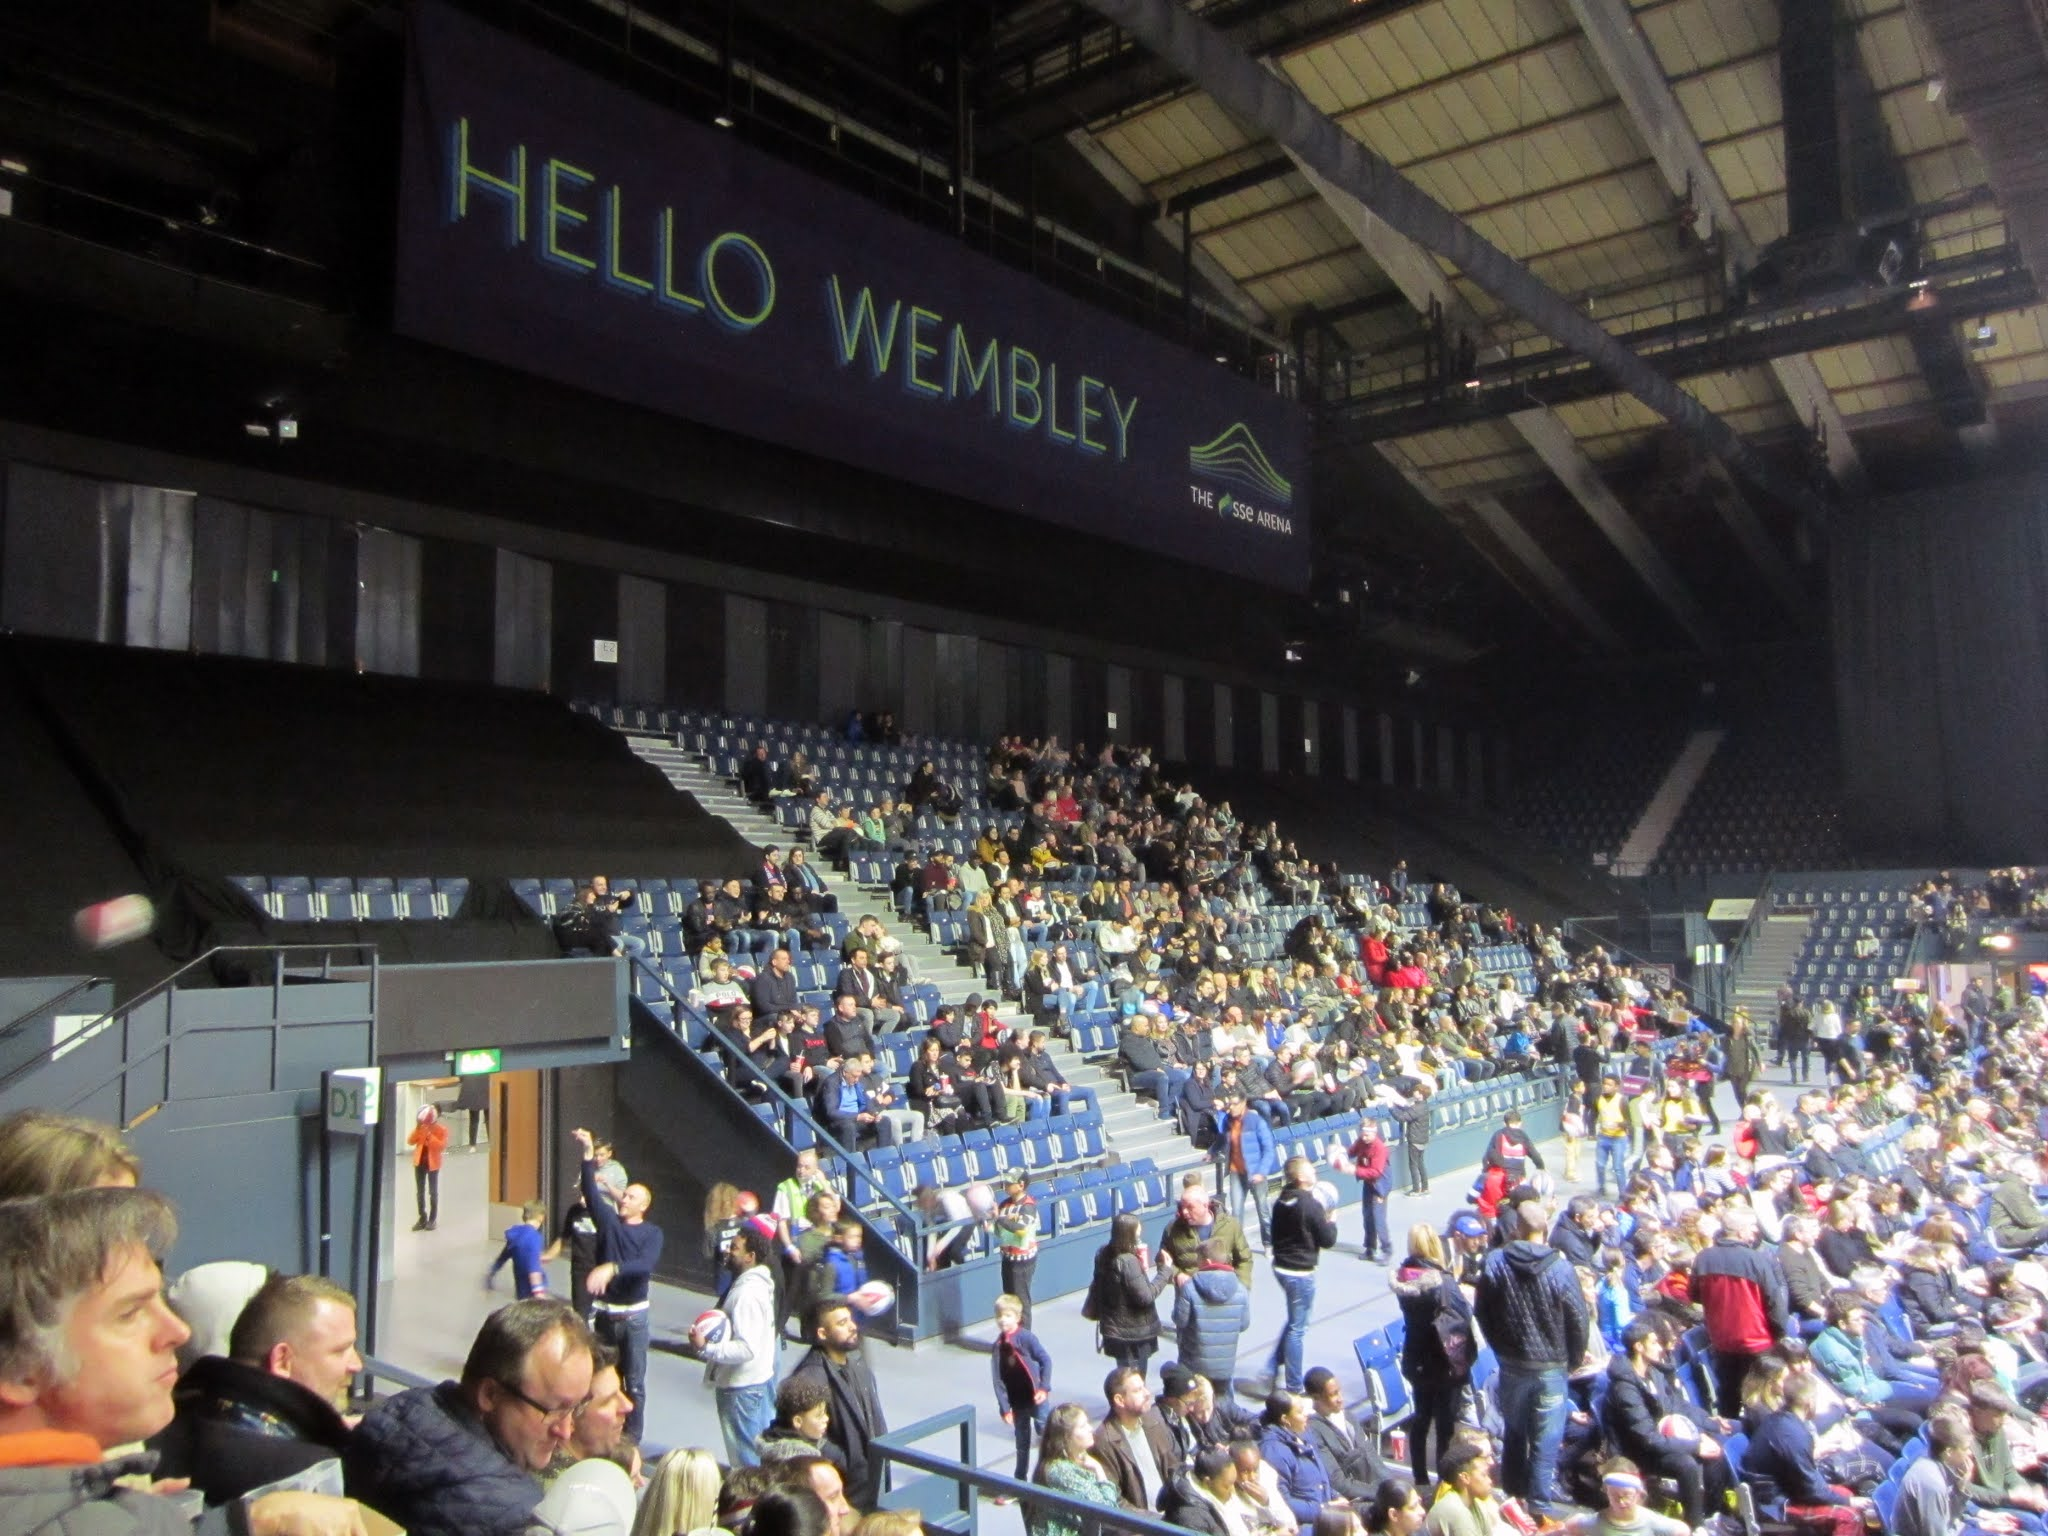 Spectator stand at The SSE Arena, Wembley